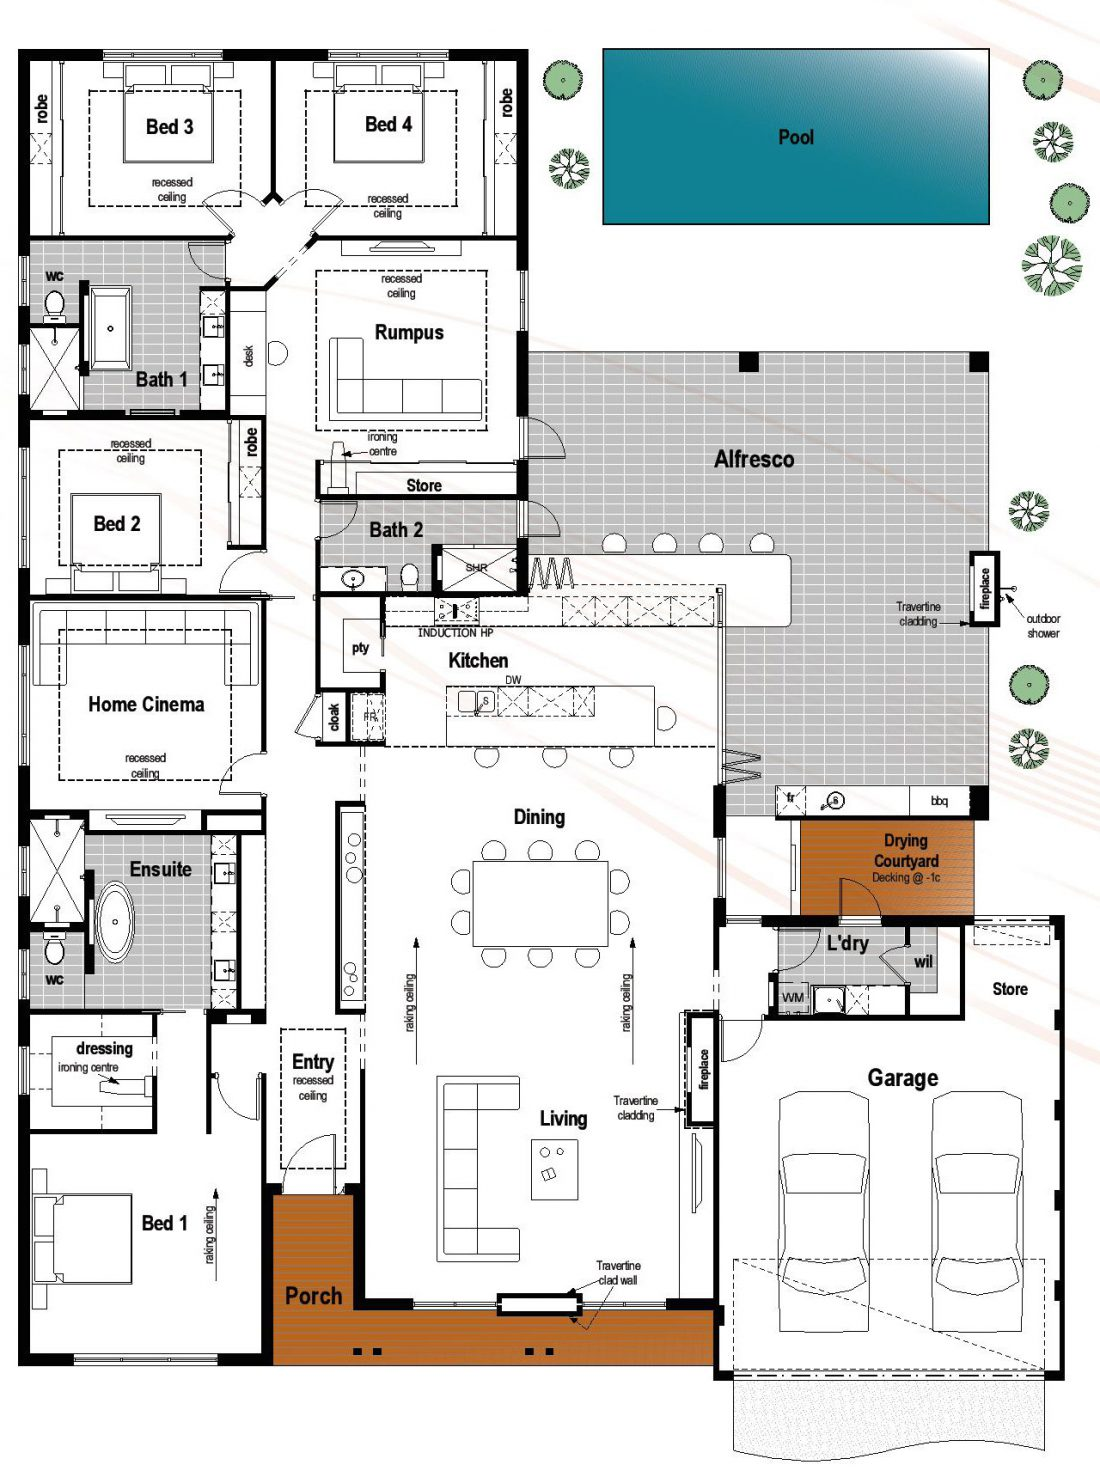 Floor plan friday 4 bedroom 3 bathroom with modern skillion roof - Home plans with large kitchens ...